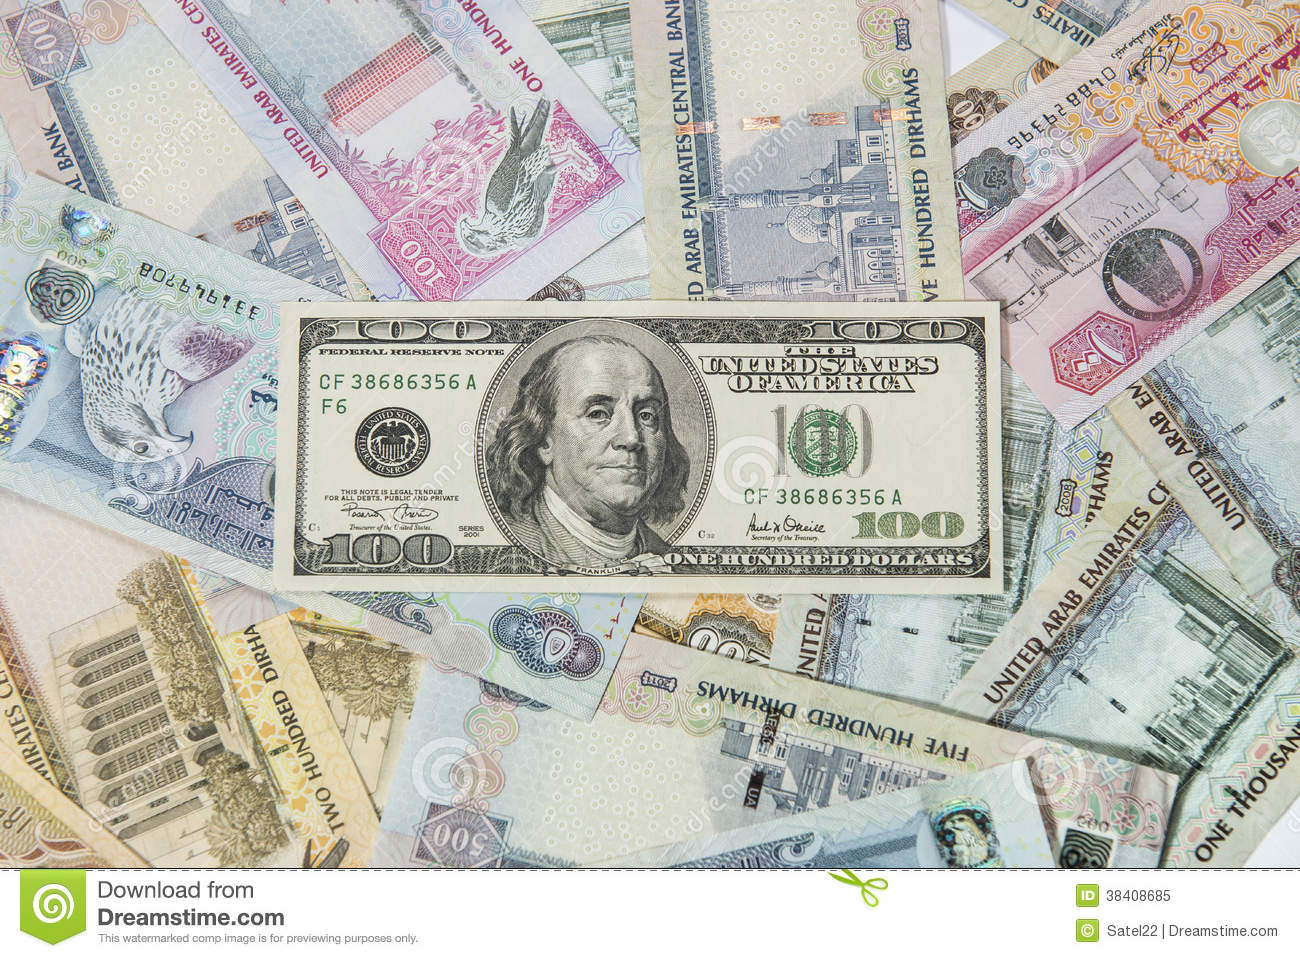 UAE dirham (AED) to U.S. dollar (USD) Chart